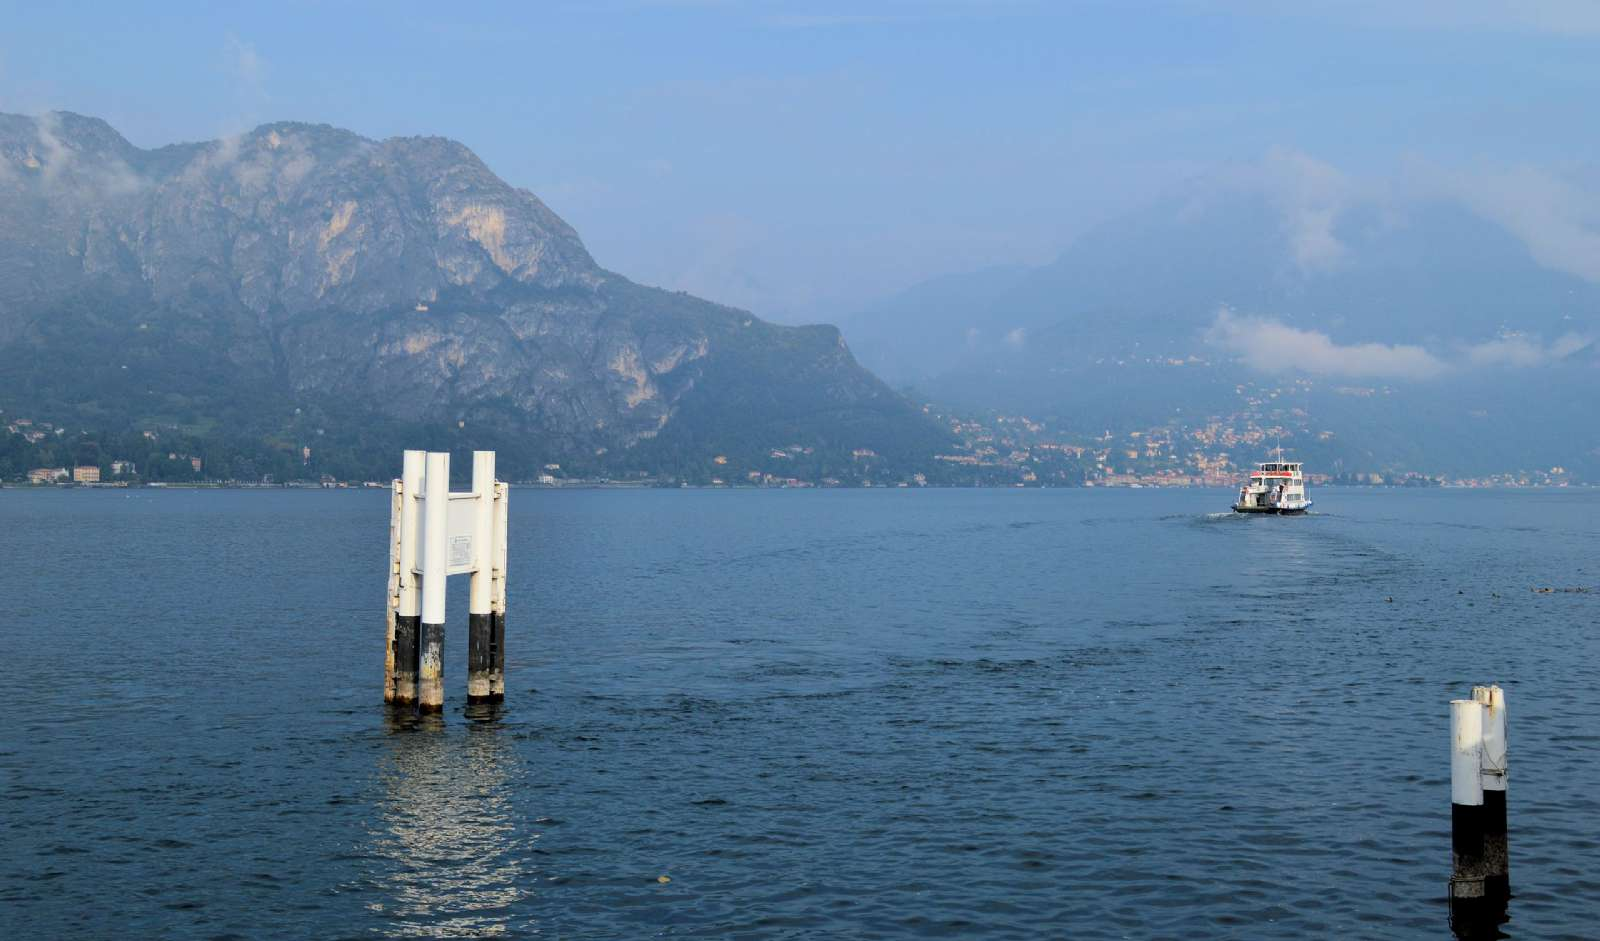 The ferries on Lake Como sail frequently